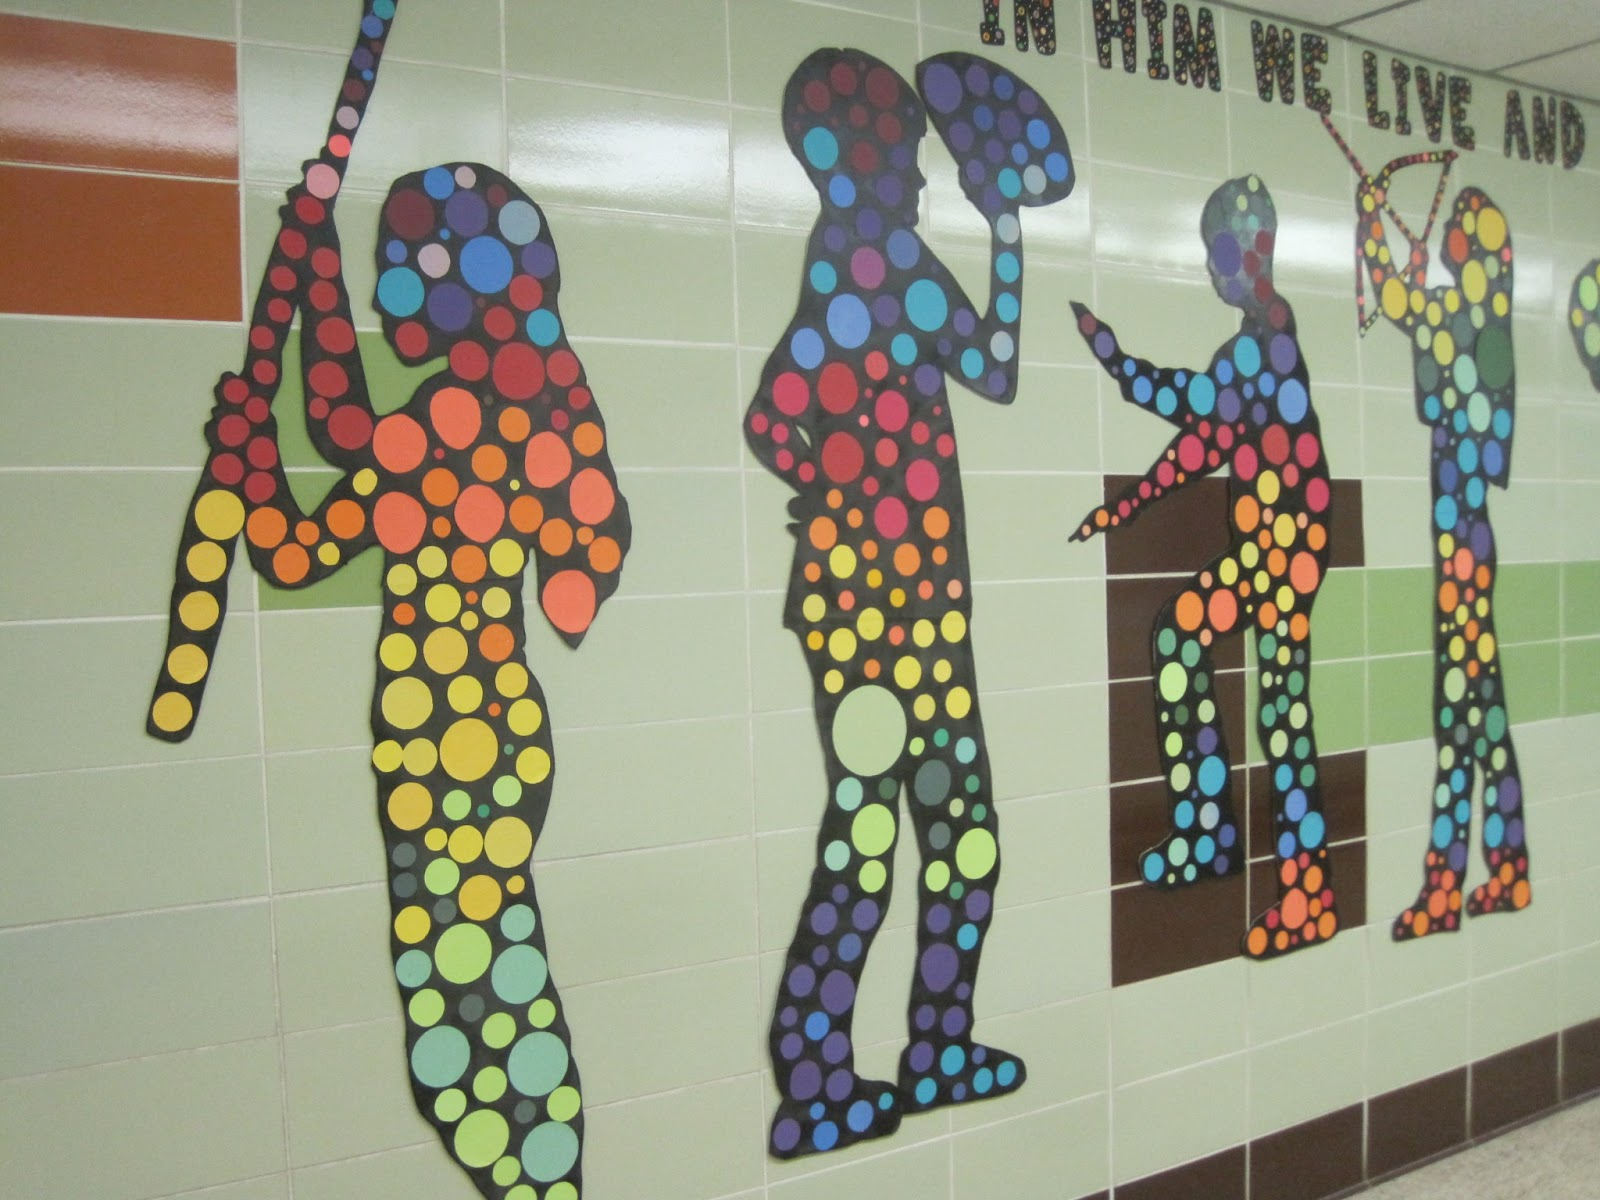 Using Action Silhouettes to Brighten a Hallway & Classroom Decoration | Inspired Class